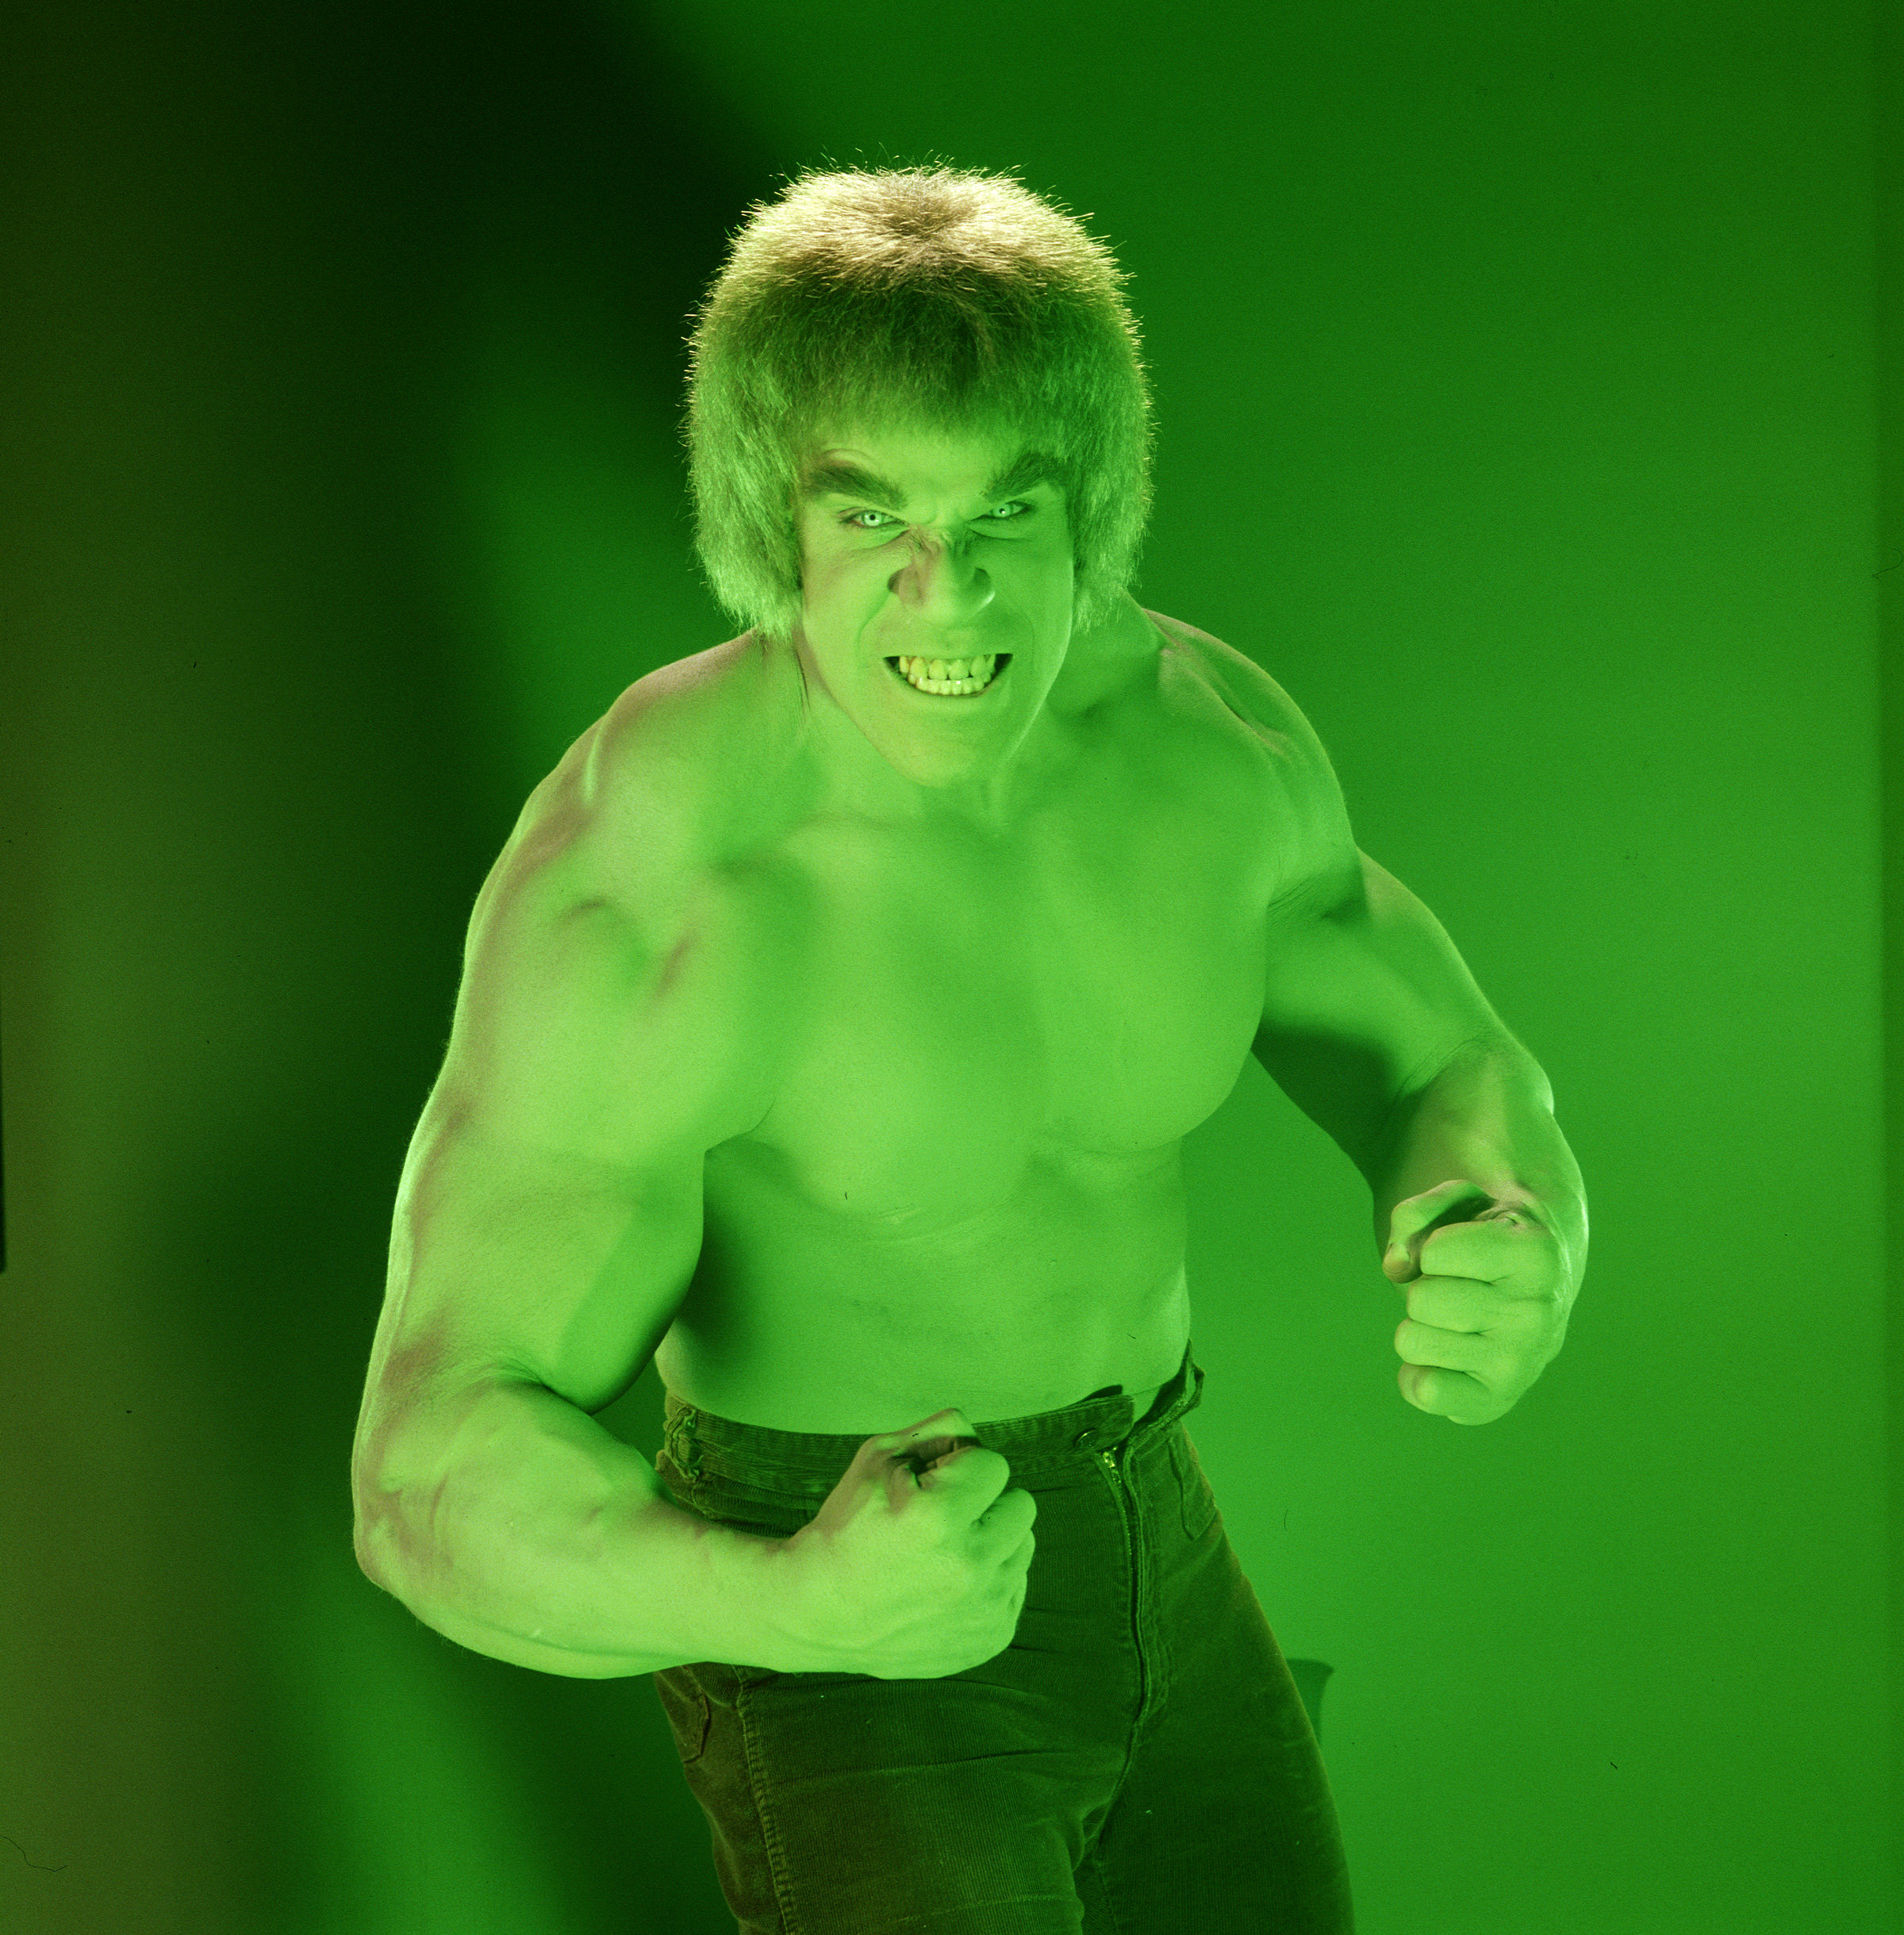 How 'The Incredible Hulk' Conquered Seventies TV